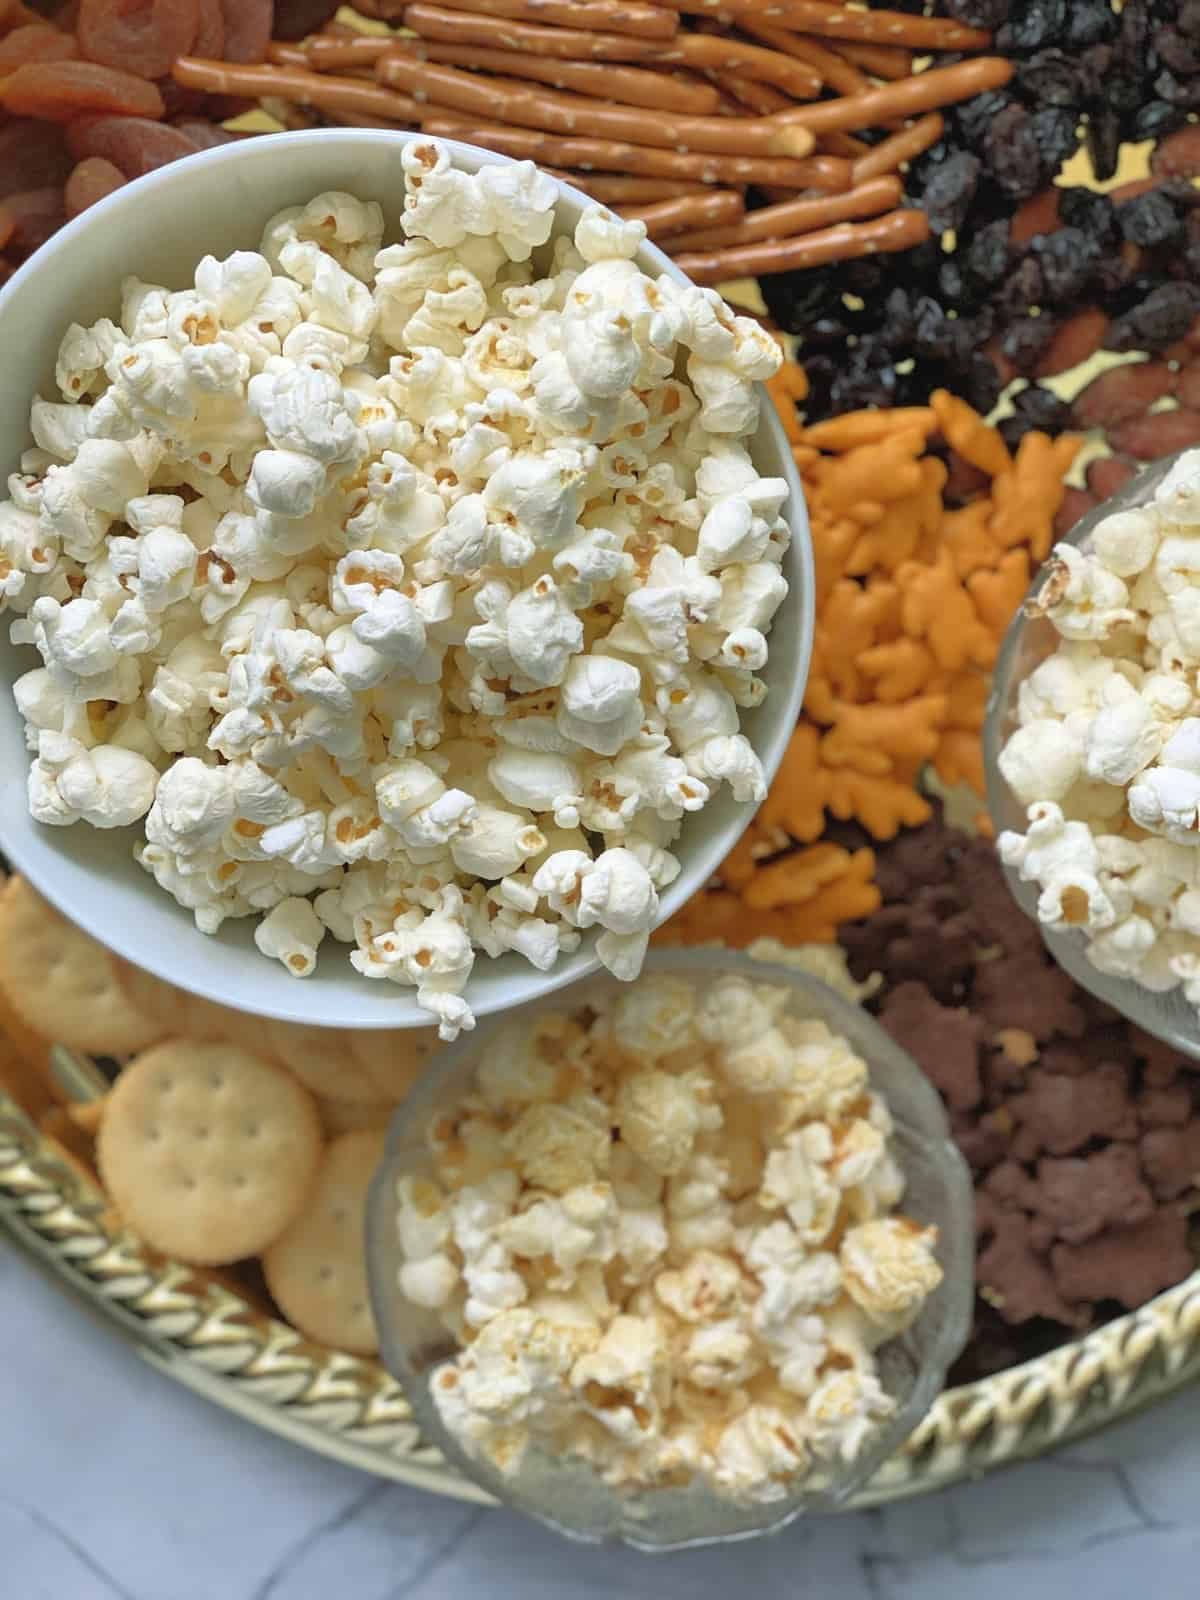 Close up top view of bowl of popcorn with pretzels, crackers, and dried fruits blurred on platter below.